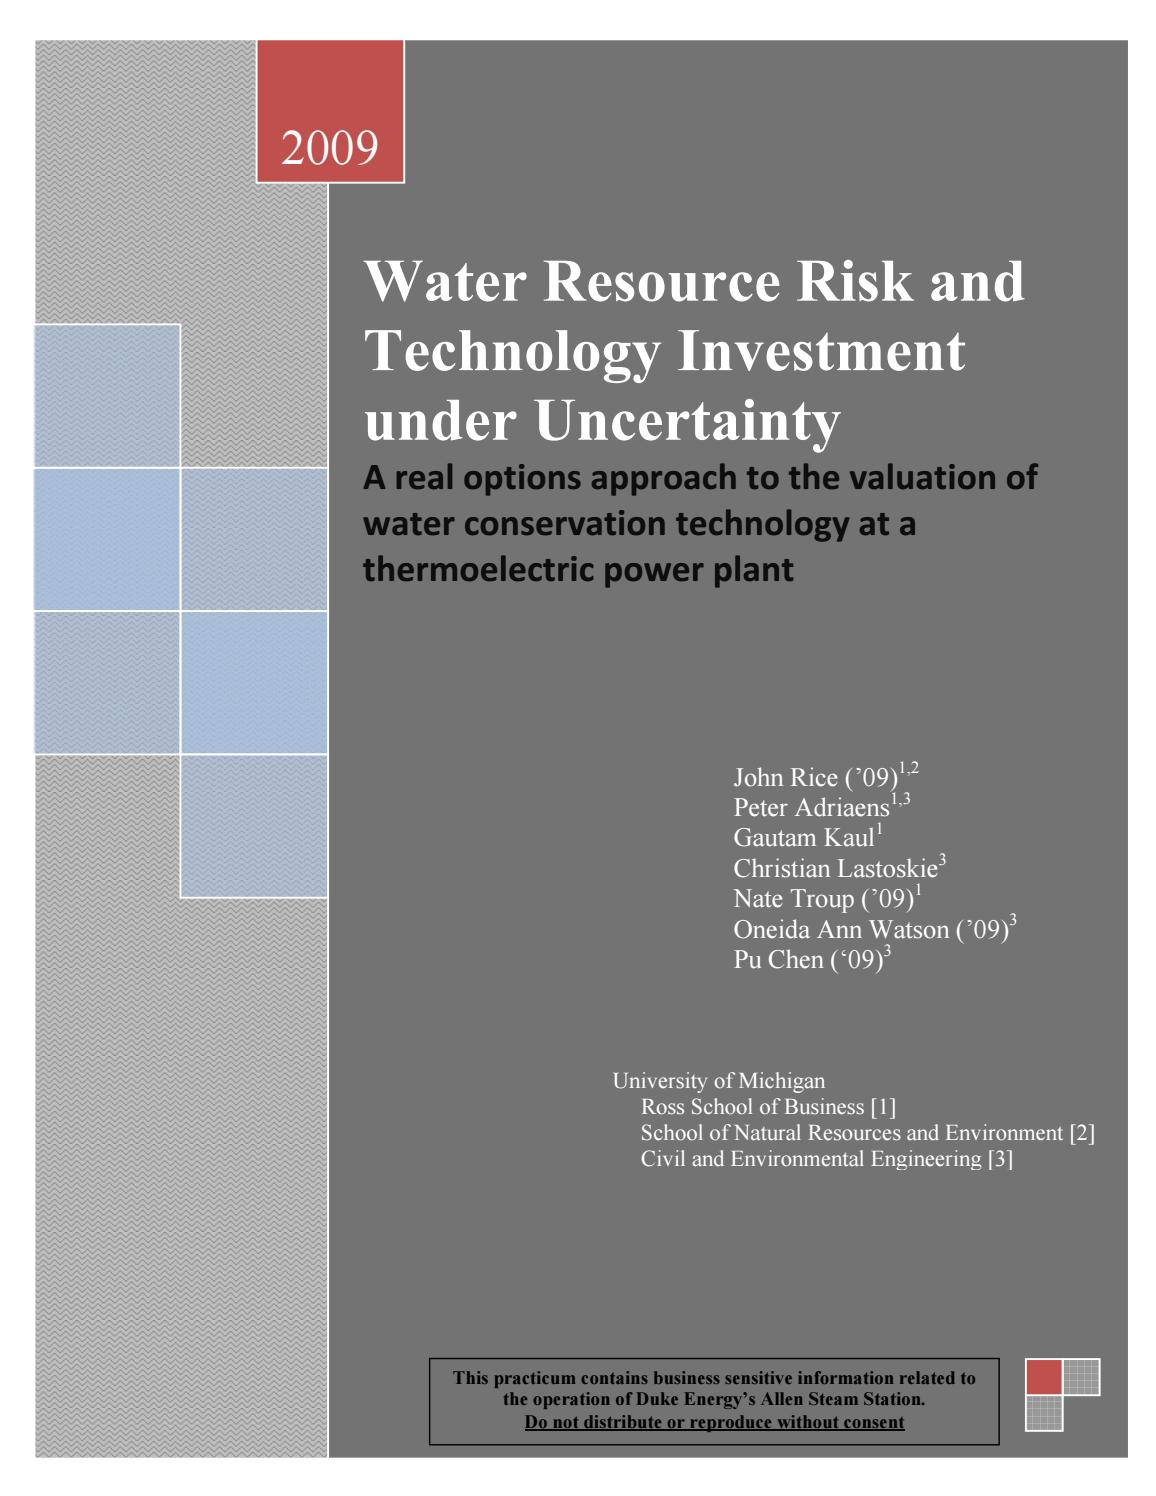 Water Resources and Technology Investment - Master's Project